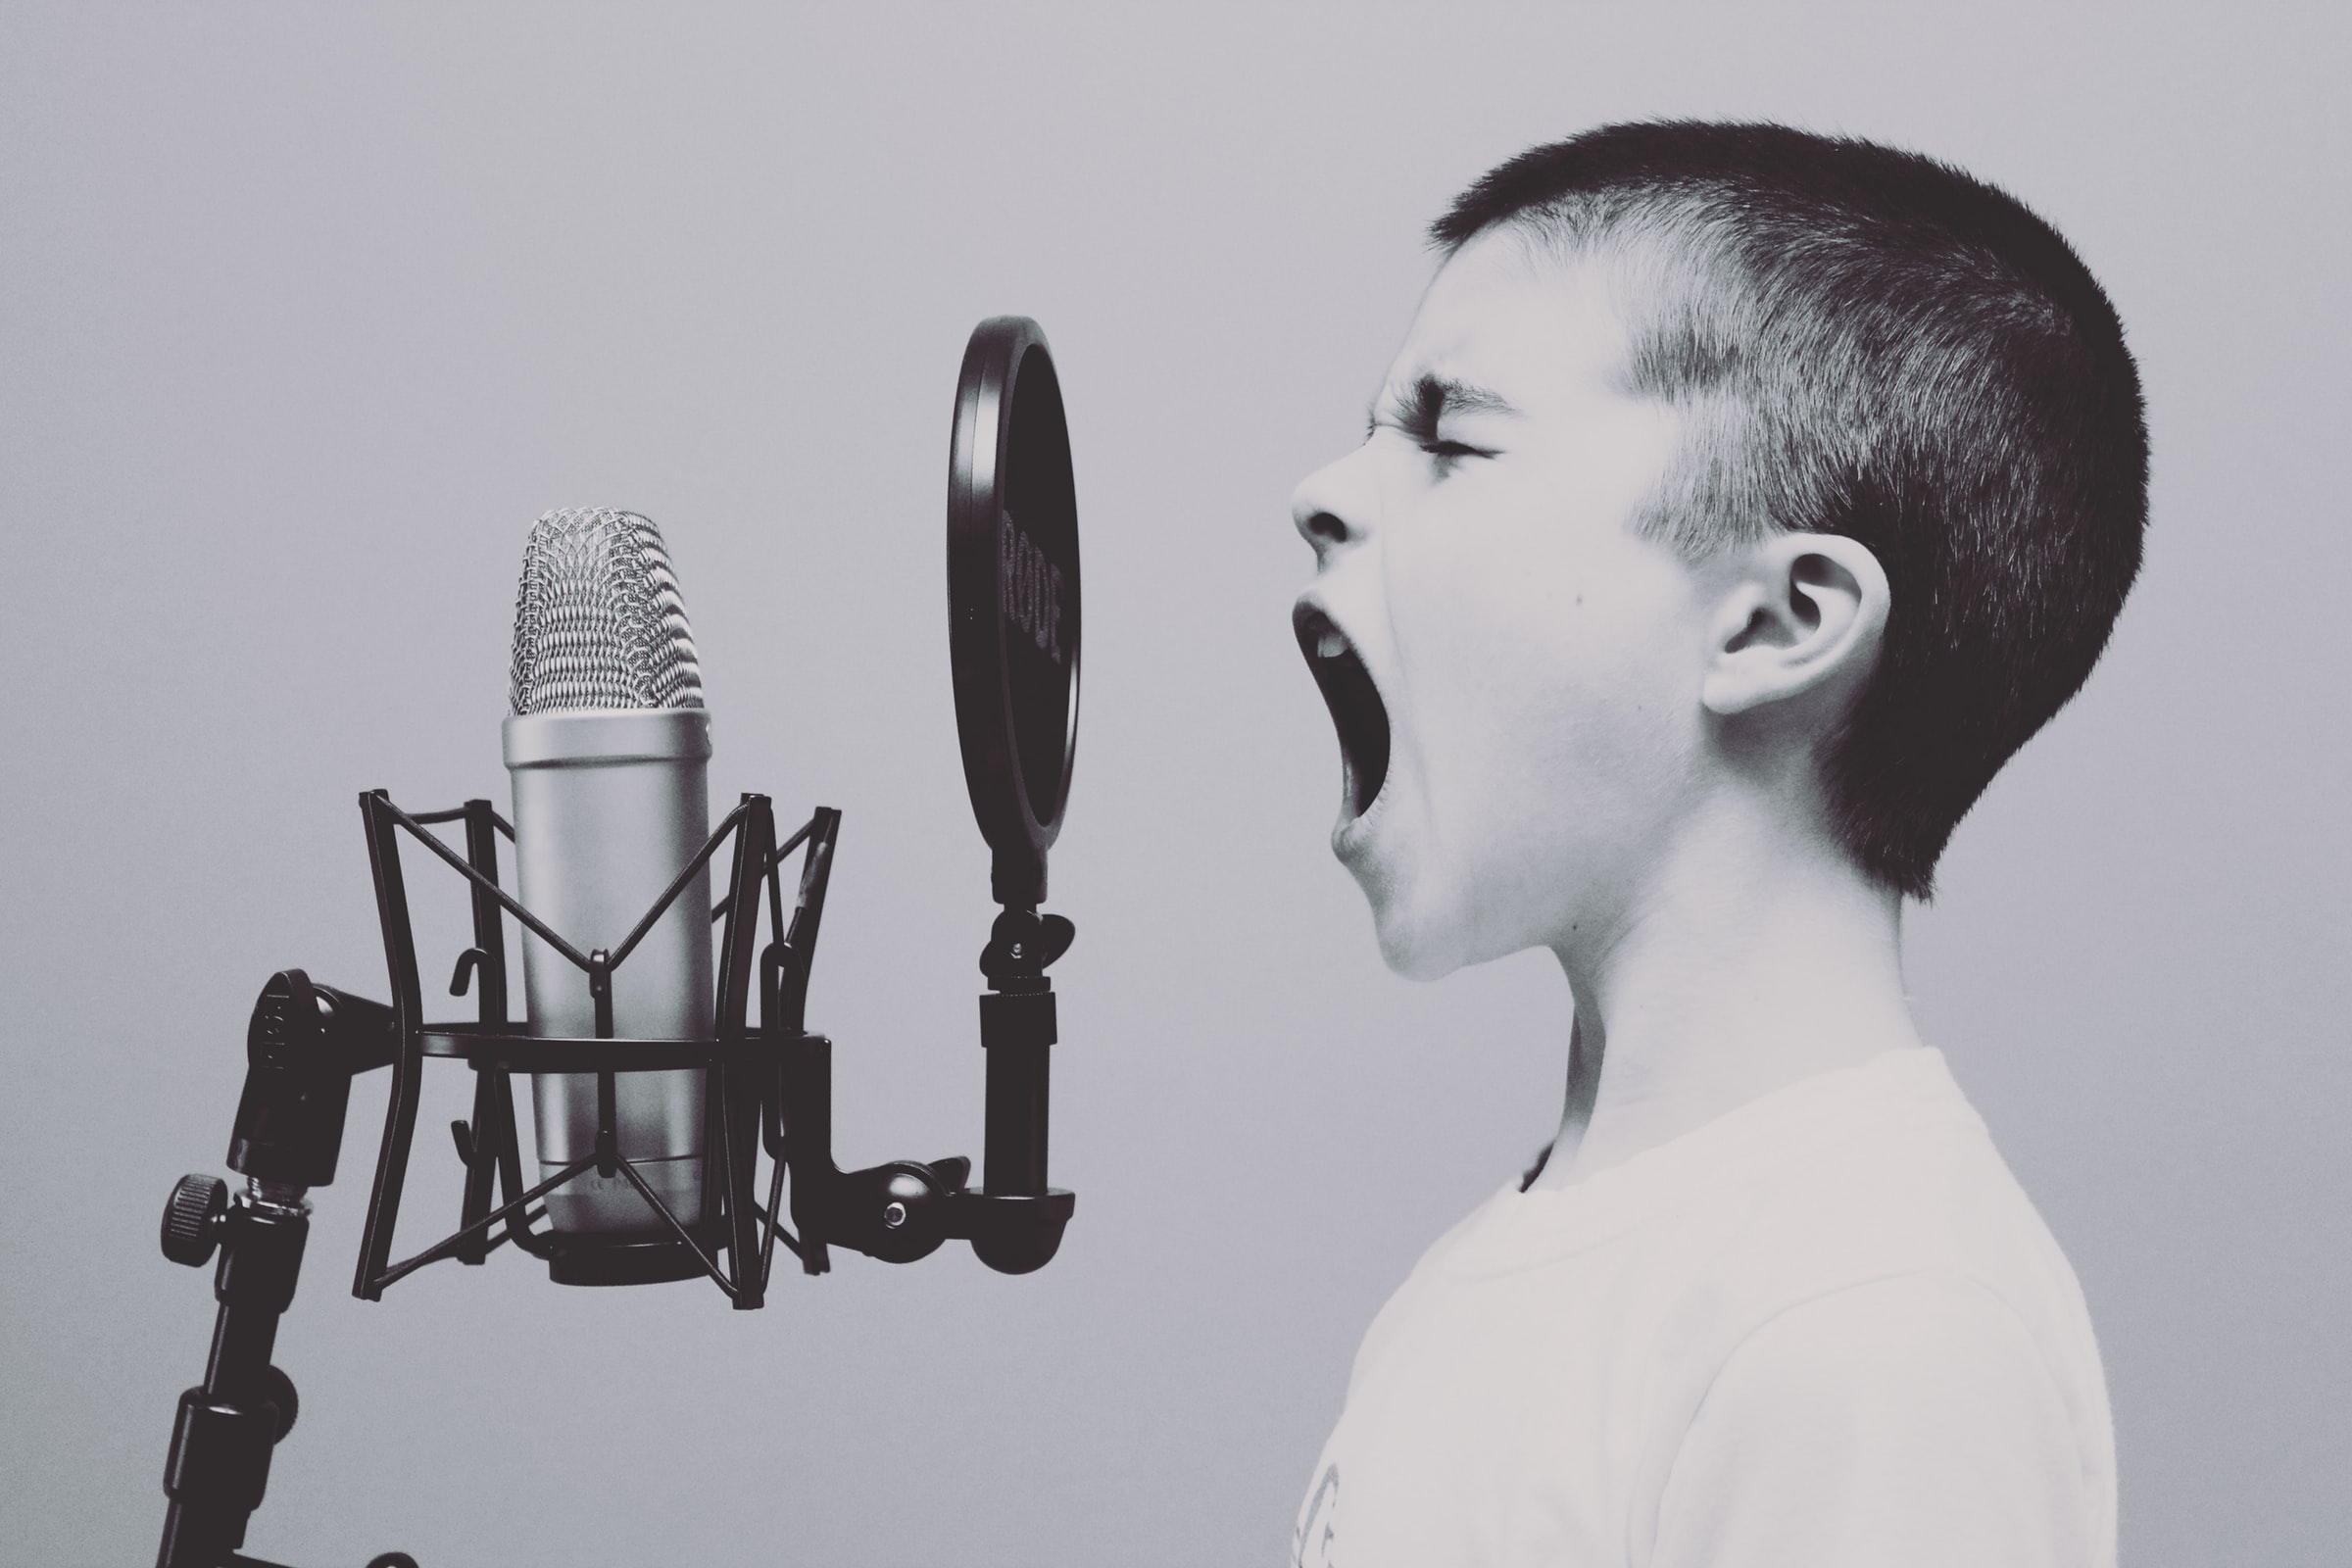 A boy sings into a microphone